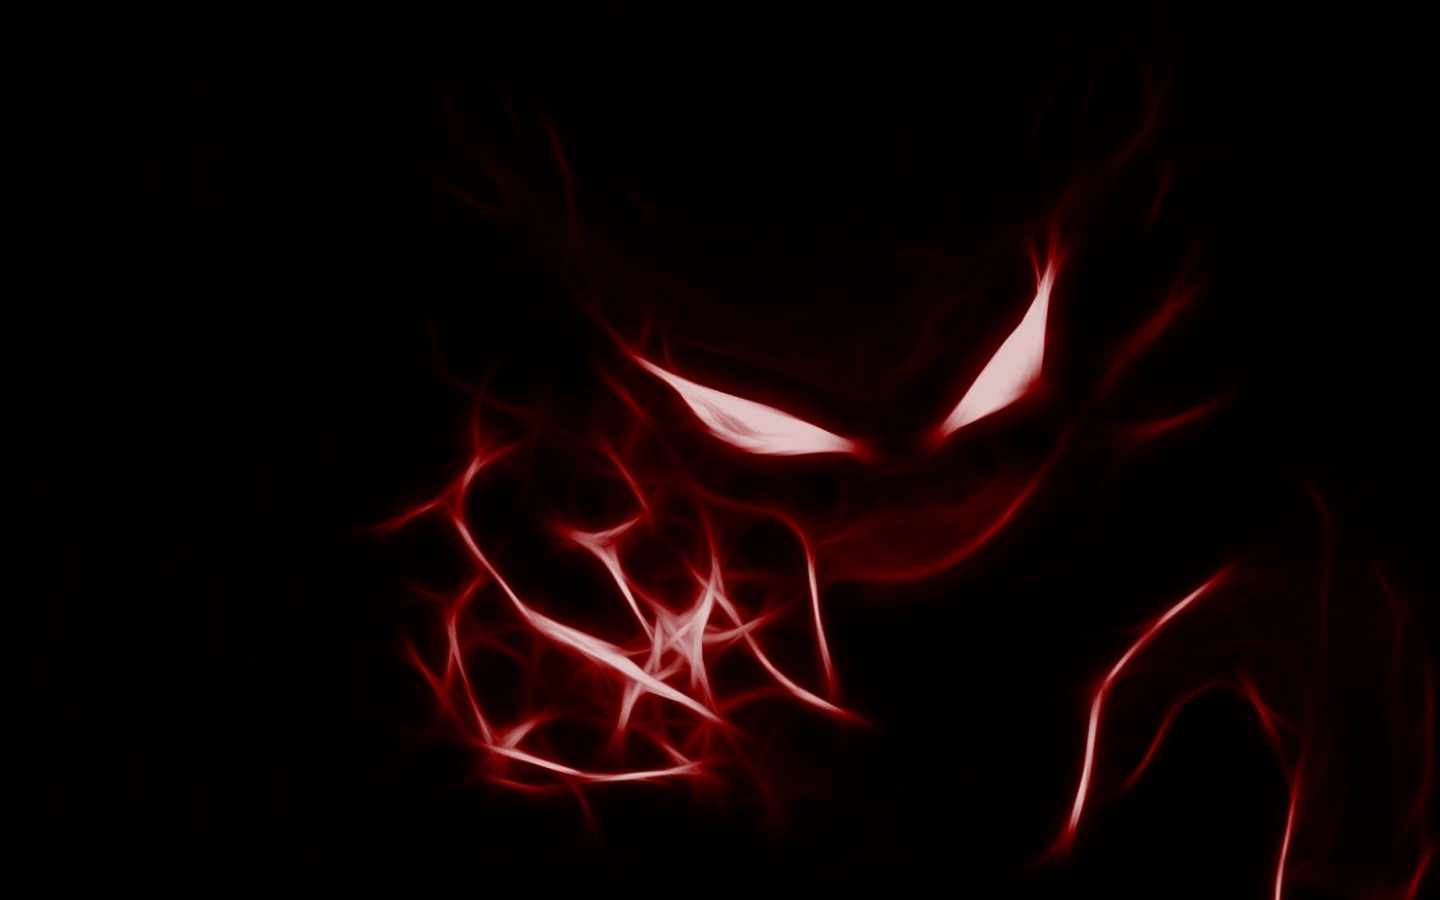 Free Download Cool Red Lightning Backgrounds Be Coloured Red To Go With 1516x948 For Your Desktop Mobile Tablet Explore 77 Cool Lightning Backgrounds Cool Lightning Wallpapers Moving Lightning Wallpaper